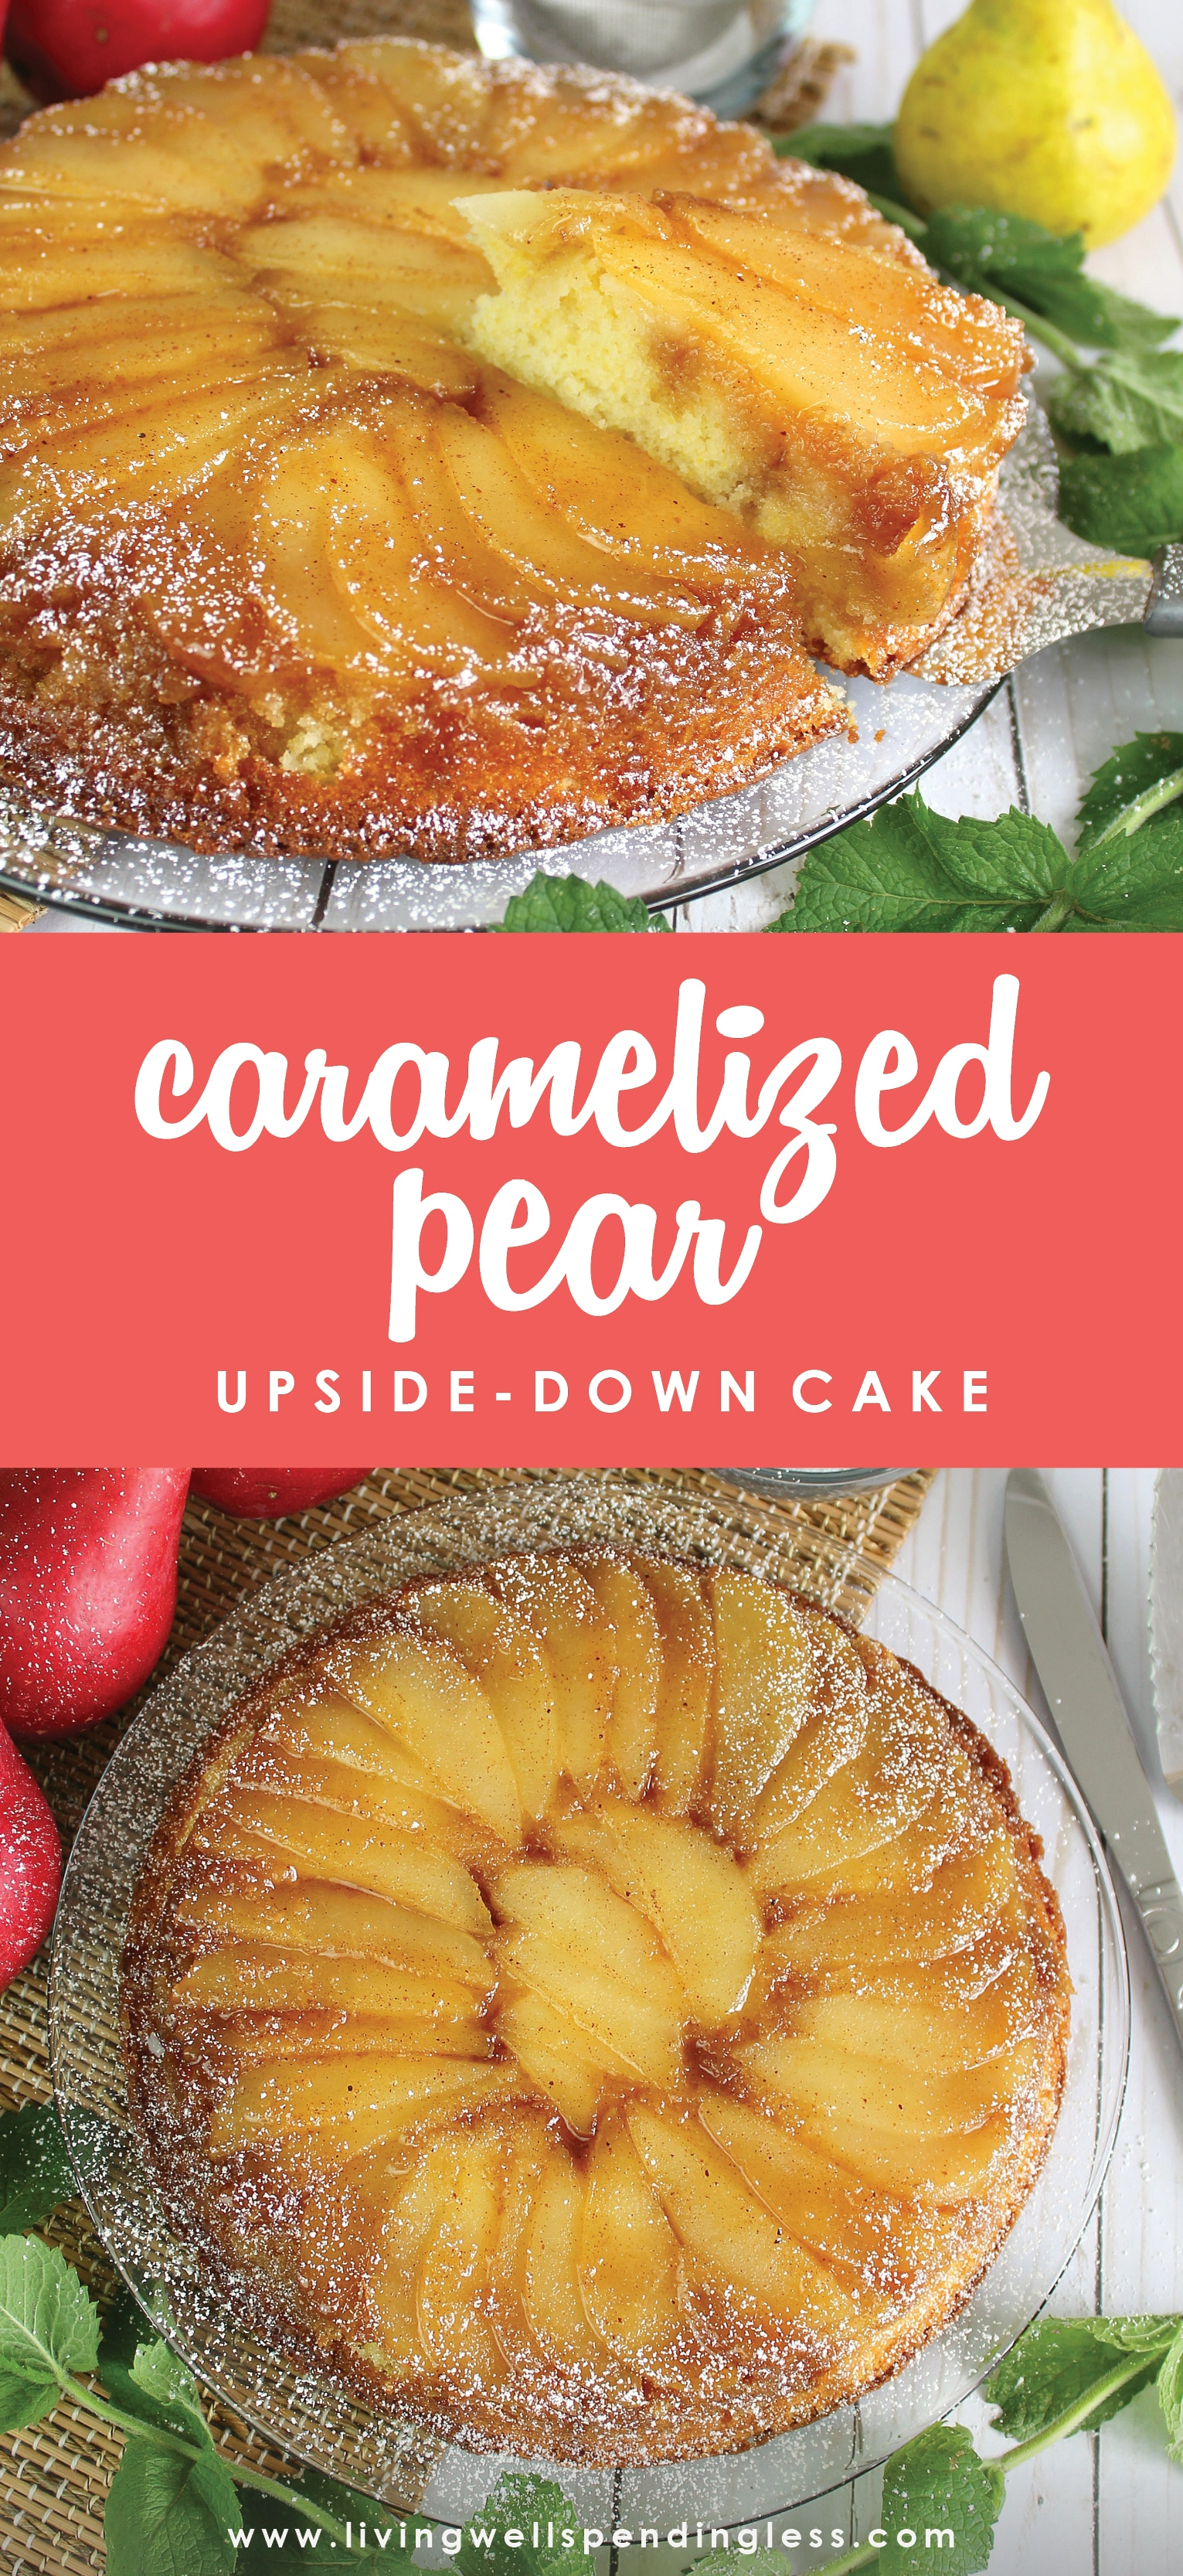 Wanna know one of my favorite desserts? It has to be this Caramelized Pear Upside Down Cake. It's easy, tastes delicious, and is sure to please the whole family.